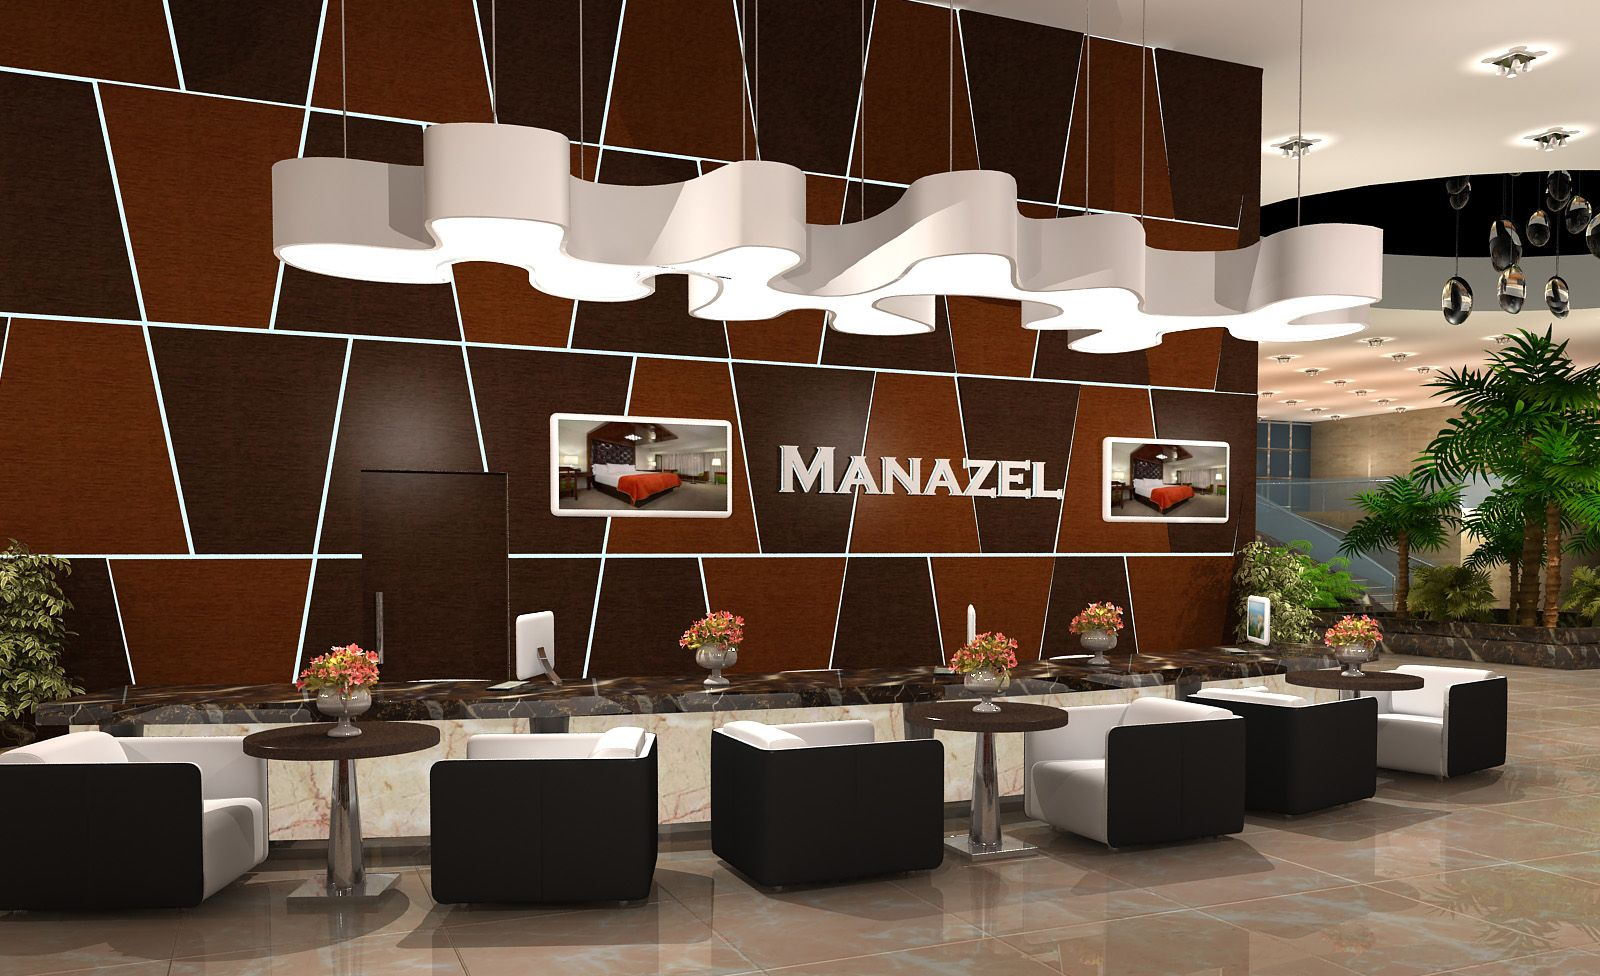 The first ferry manazil five star hotel lobby design for Modern hotel design